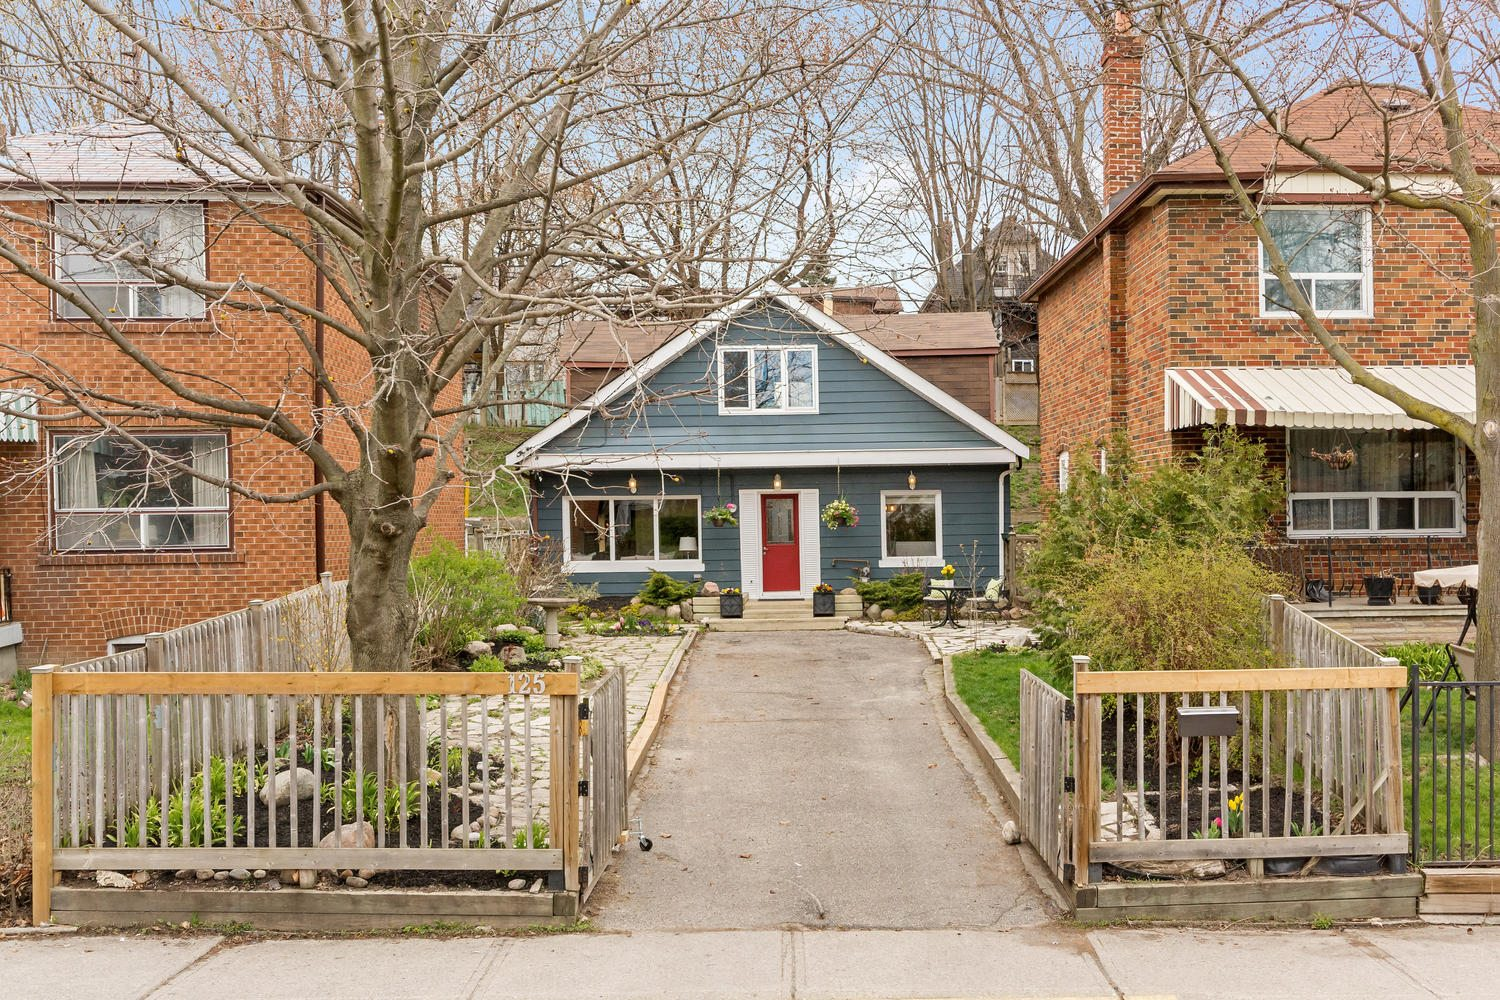 The house for sale at 125 Highfield Road